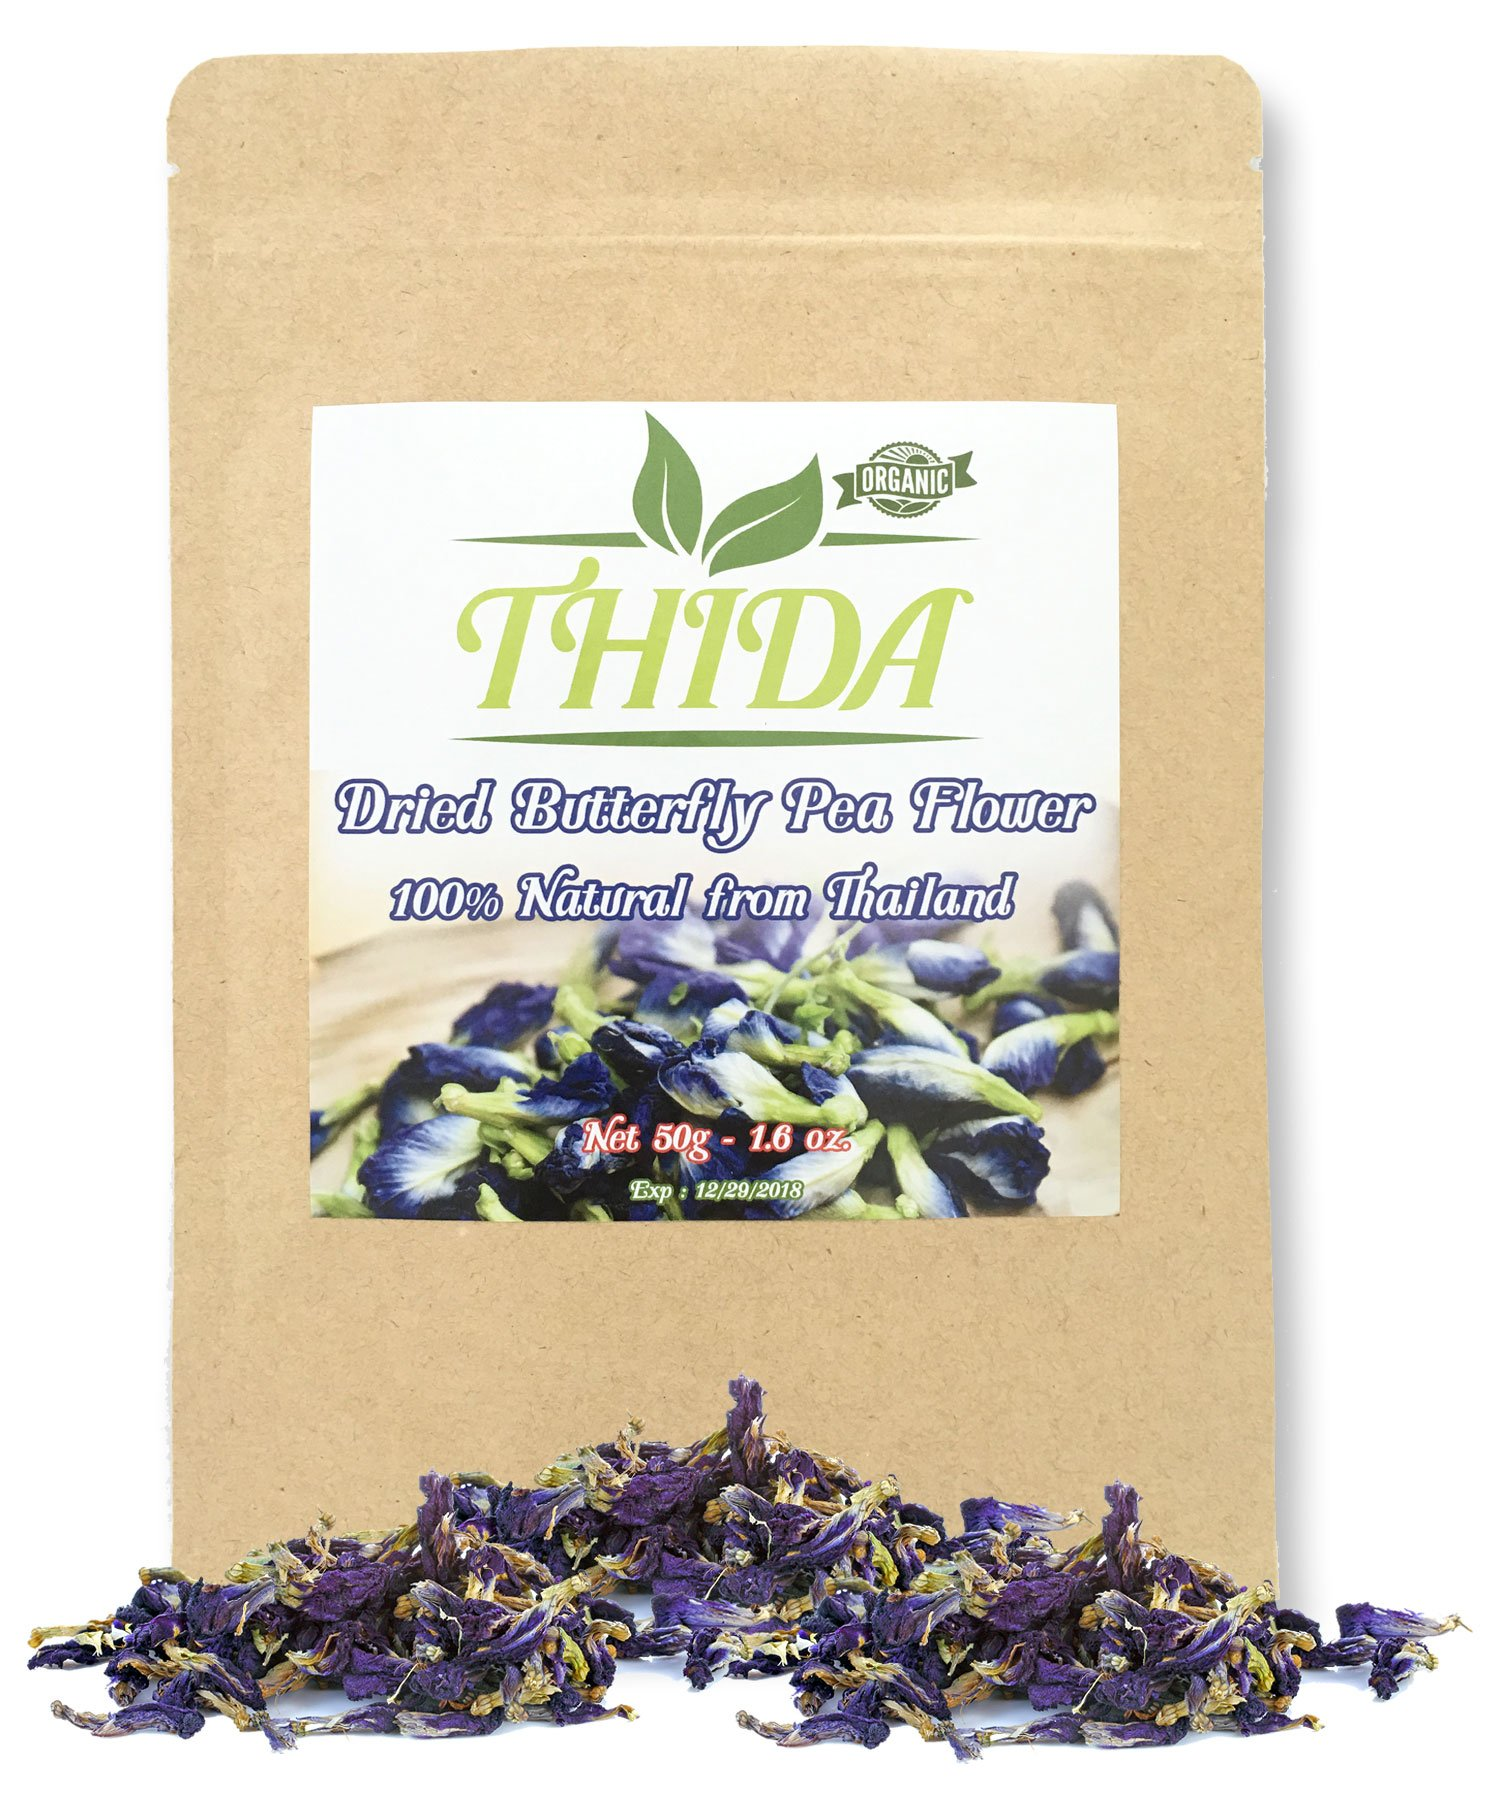 Butterfly Pea Flower Tea for Enhancing Hot & Cold Teas - 100% Organic/Pesticide Free Natural Dried Thai Herbals, Carefully Selected Pigeonwings Flowers Blue Tea From Northern Thailand, 1.60Oz (50g)